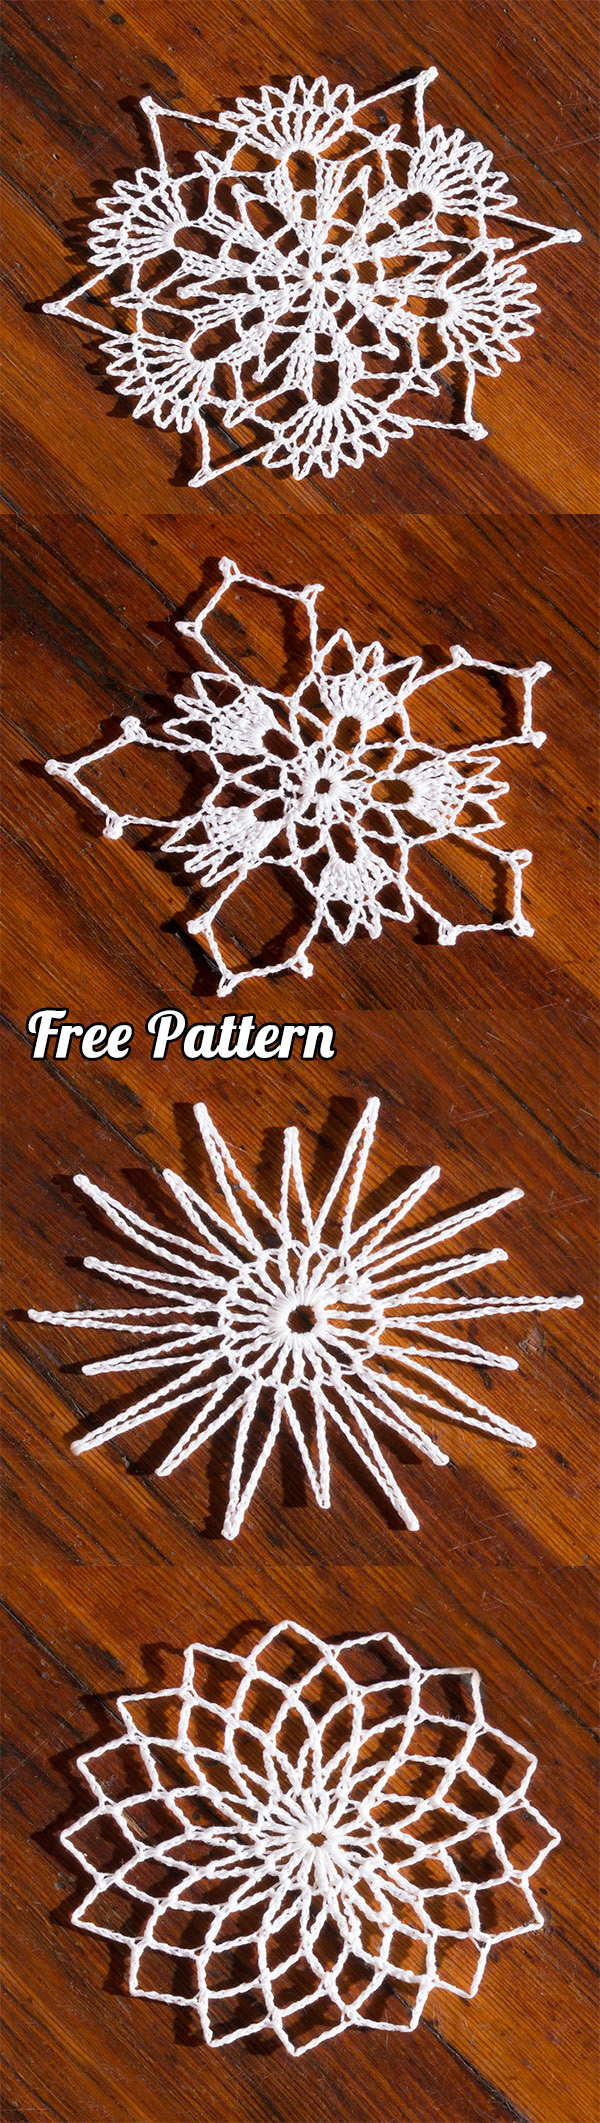 Crochet Snowflakes: Learn how to make 4 different types with free pattern